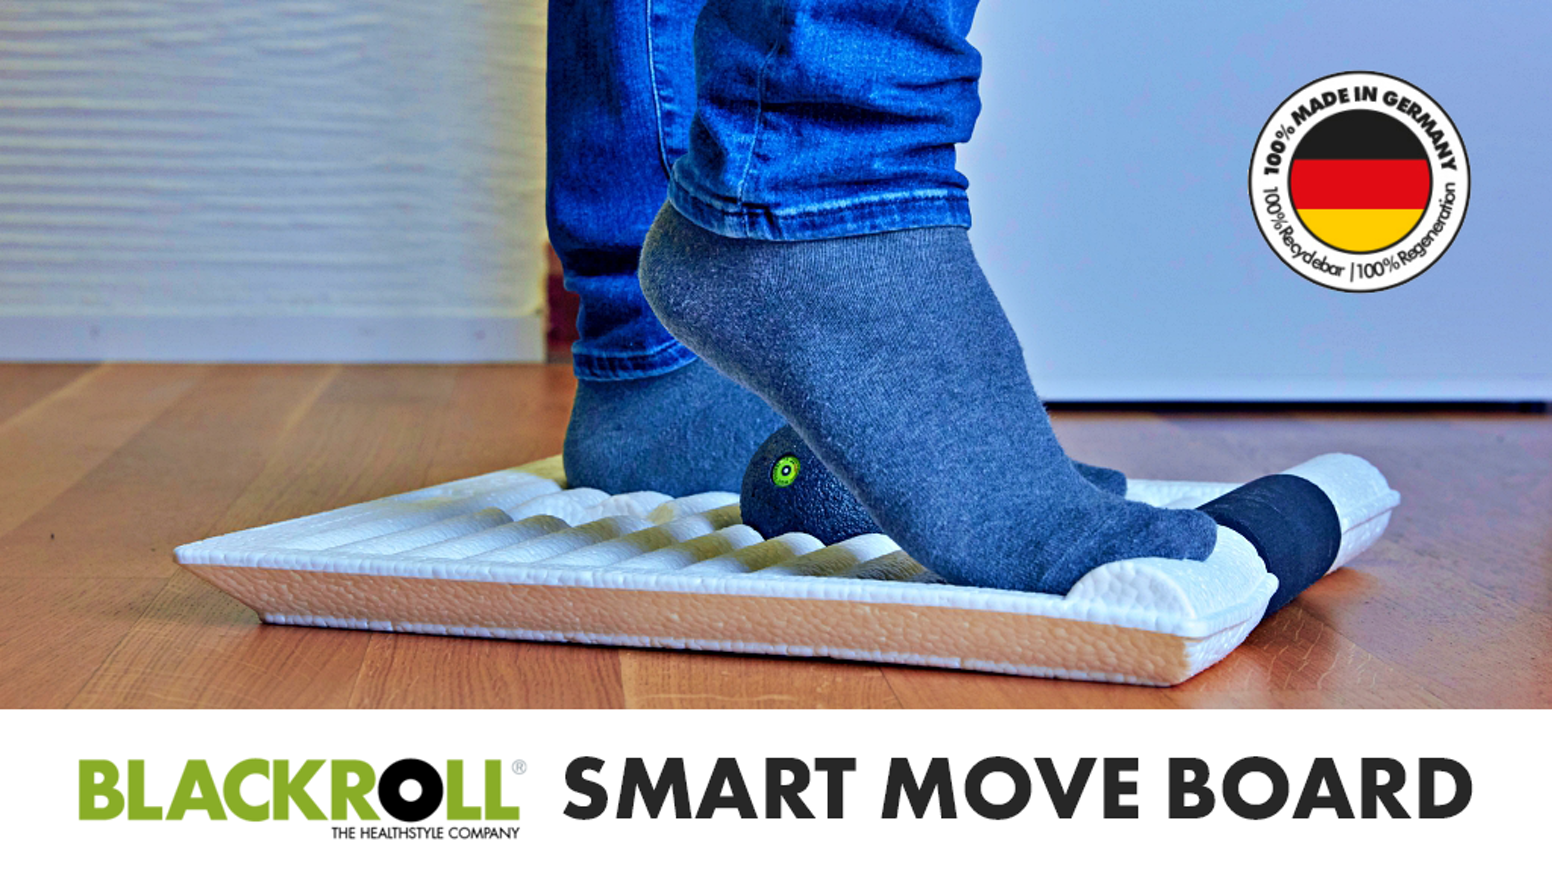 The Revolution For Your Standing Desk - BLACKROLL® SMART MOVE BOARD keeps you energized and healthy during the day.